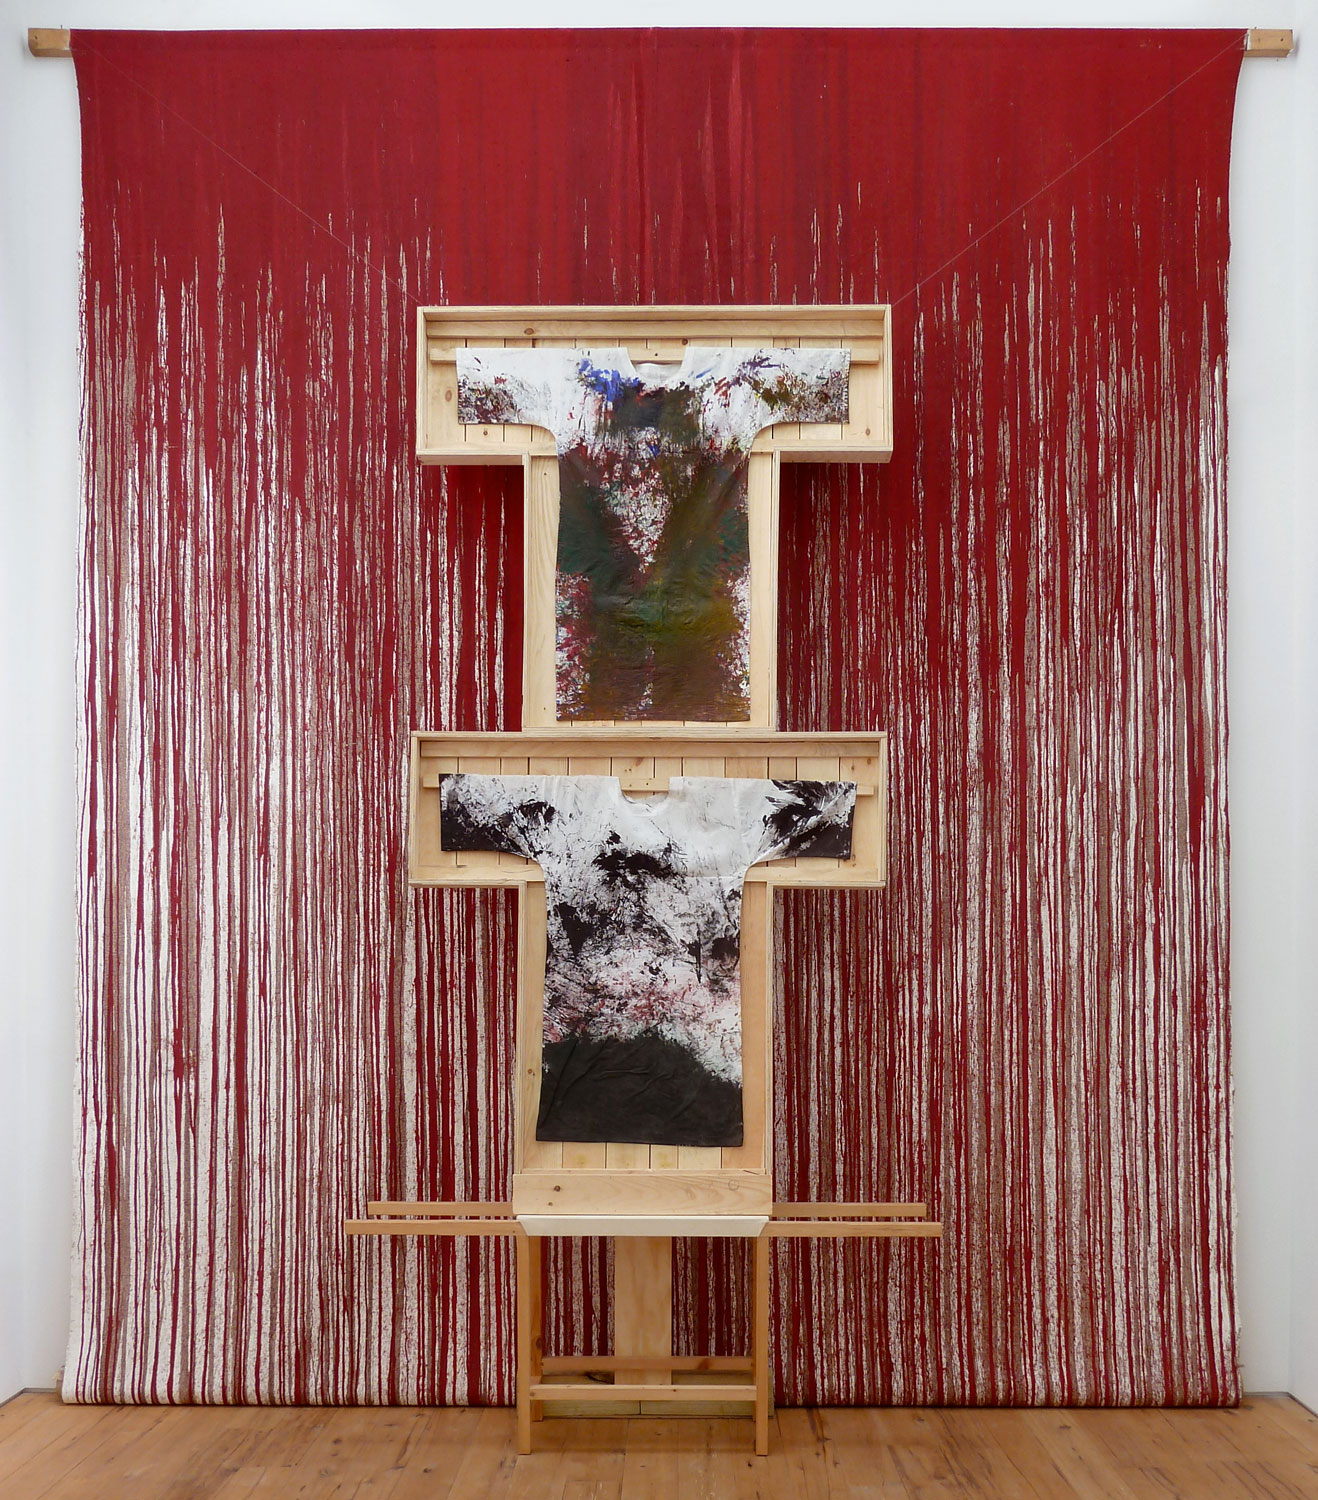 Hermann Nitsch 2011 Acrylic on Canvas 212 1/2 x 157 1/2 in 540 x 400 cm 2015 Marc Straus Gallery